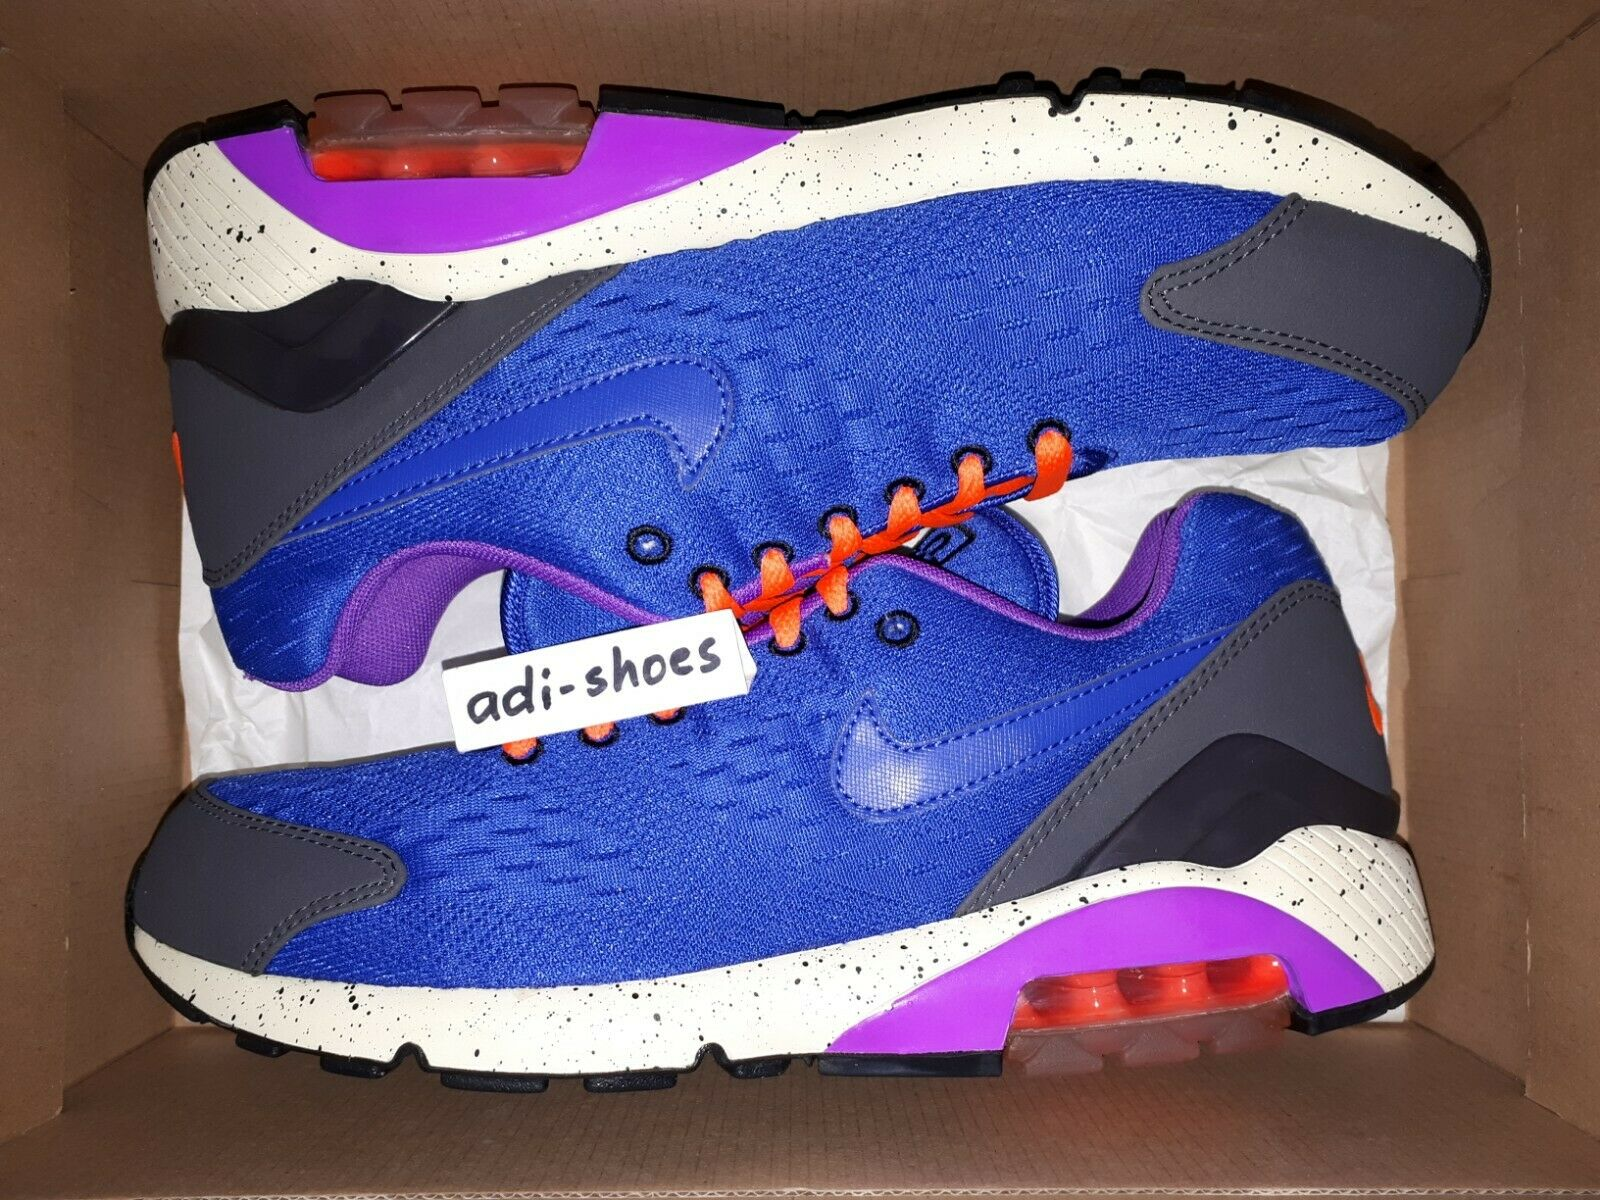 2013 NIKE AIR MAX 180 EM plagees of Rio taille 44 US 10 tape 579921-540 SP 1 97 CDG